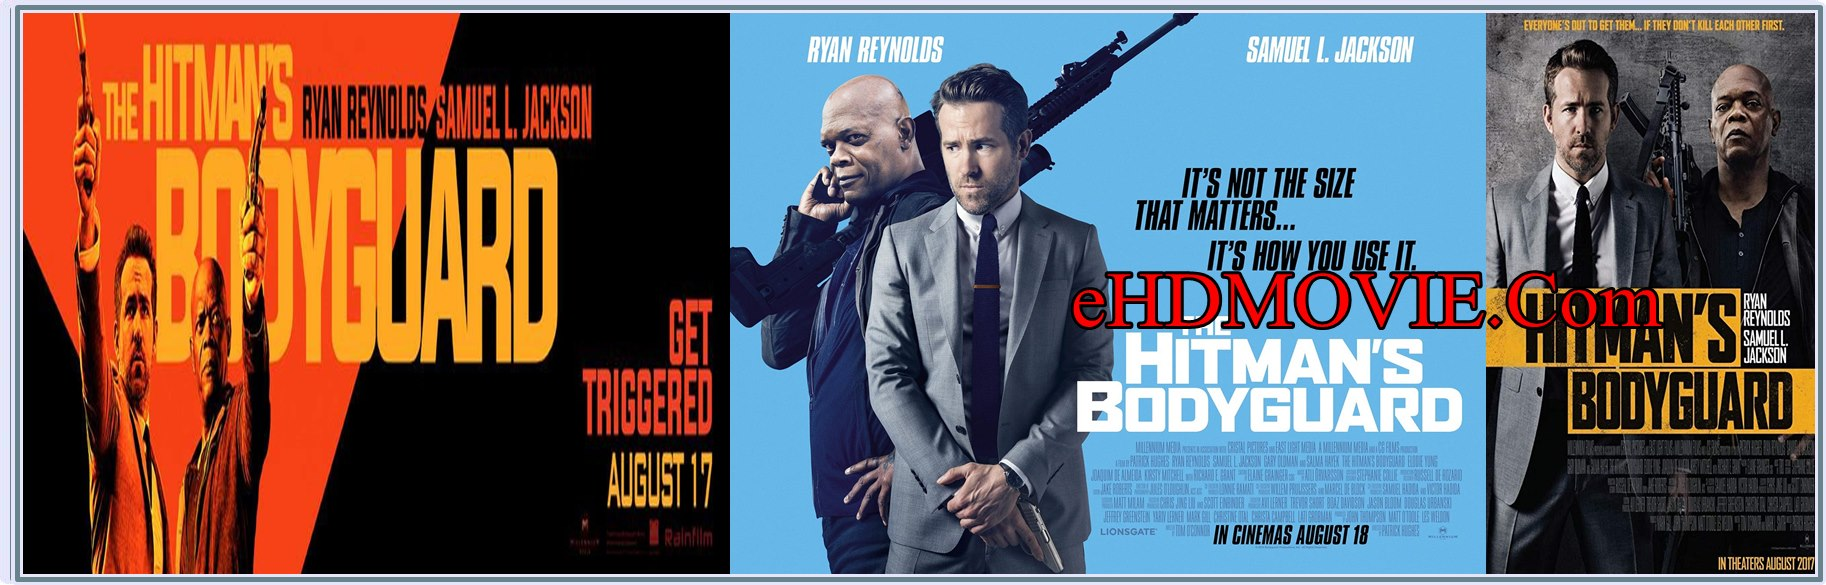 The Hitman's Bodyguard 2017 Full Movie Dual Audio [Hindi – English] 720p - HEVC - 480p ORG BRRip 400MB - 600MB - 1.2GB ESubs Free Download